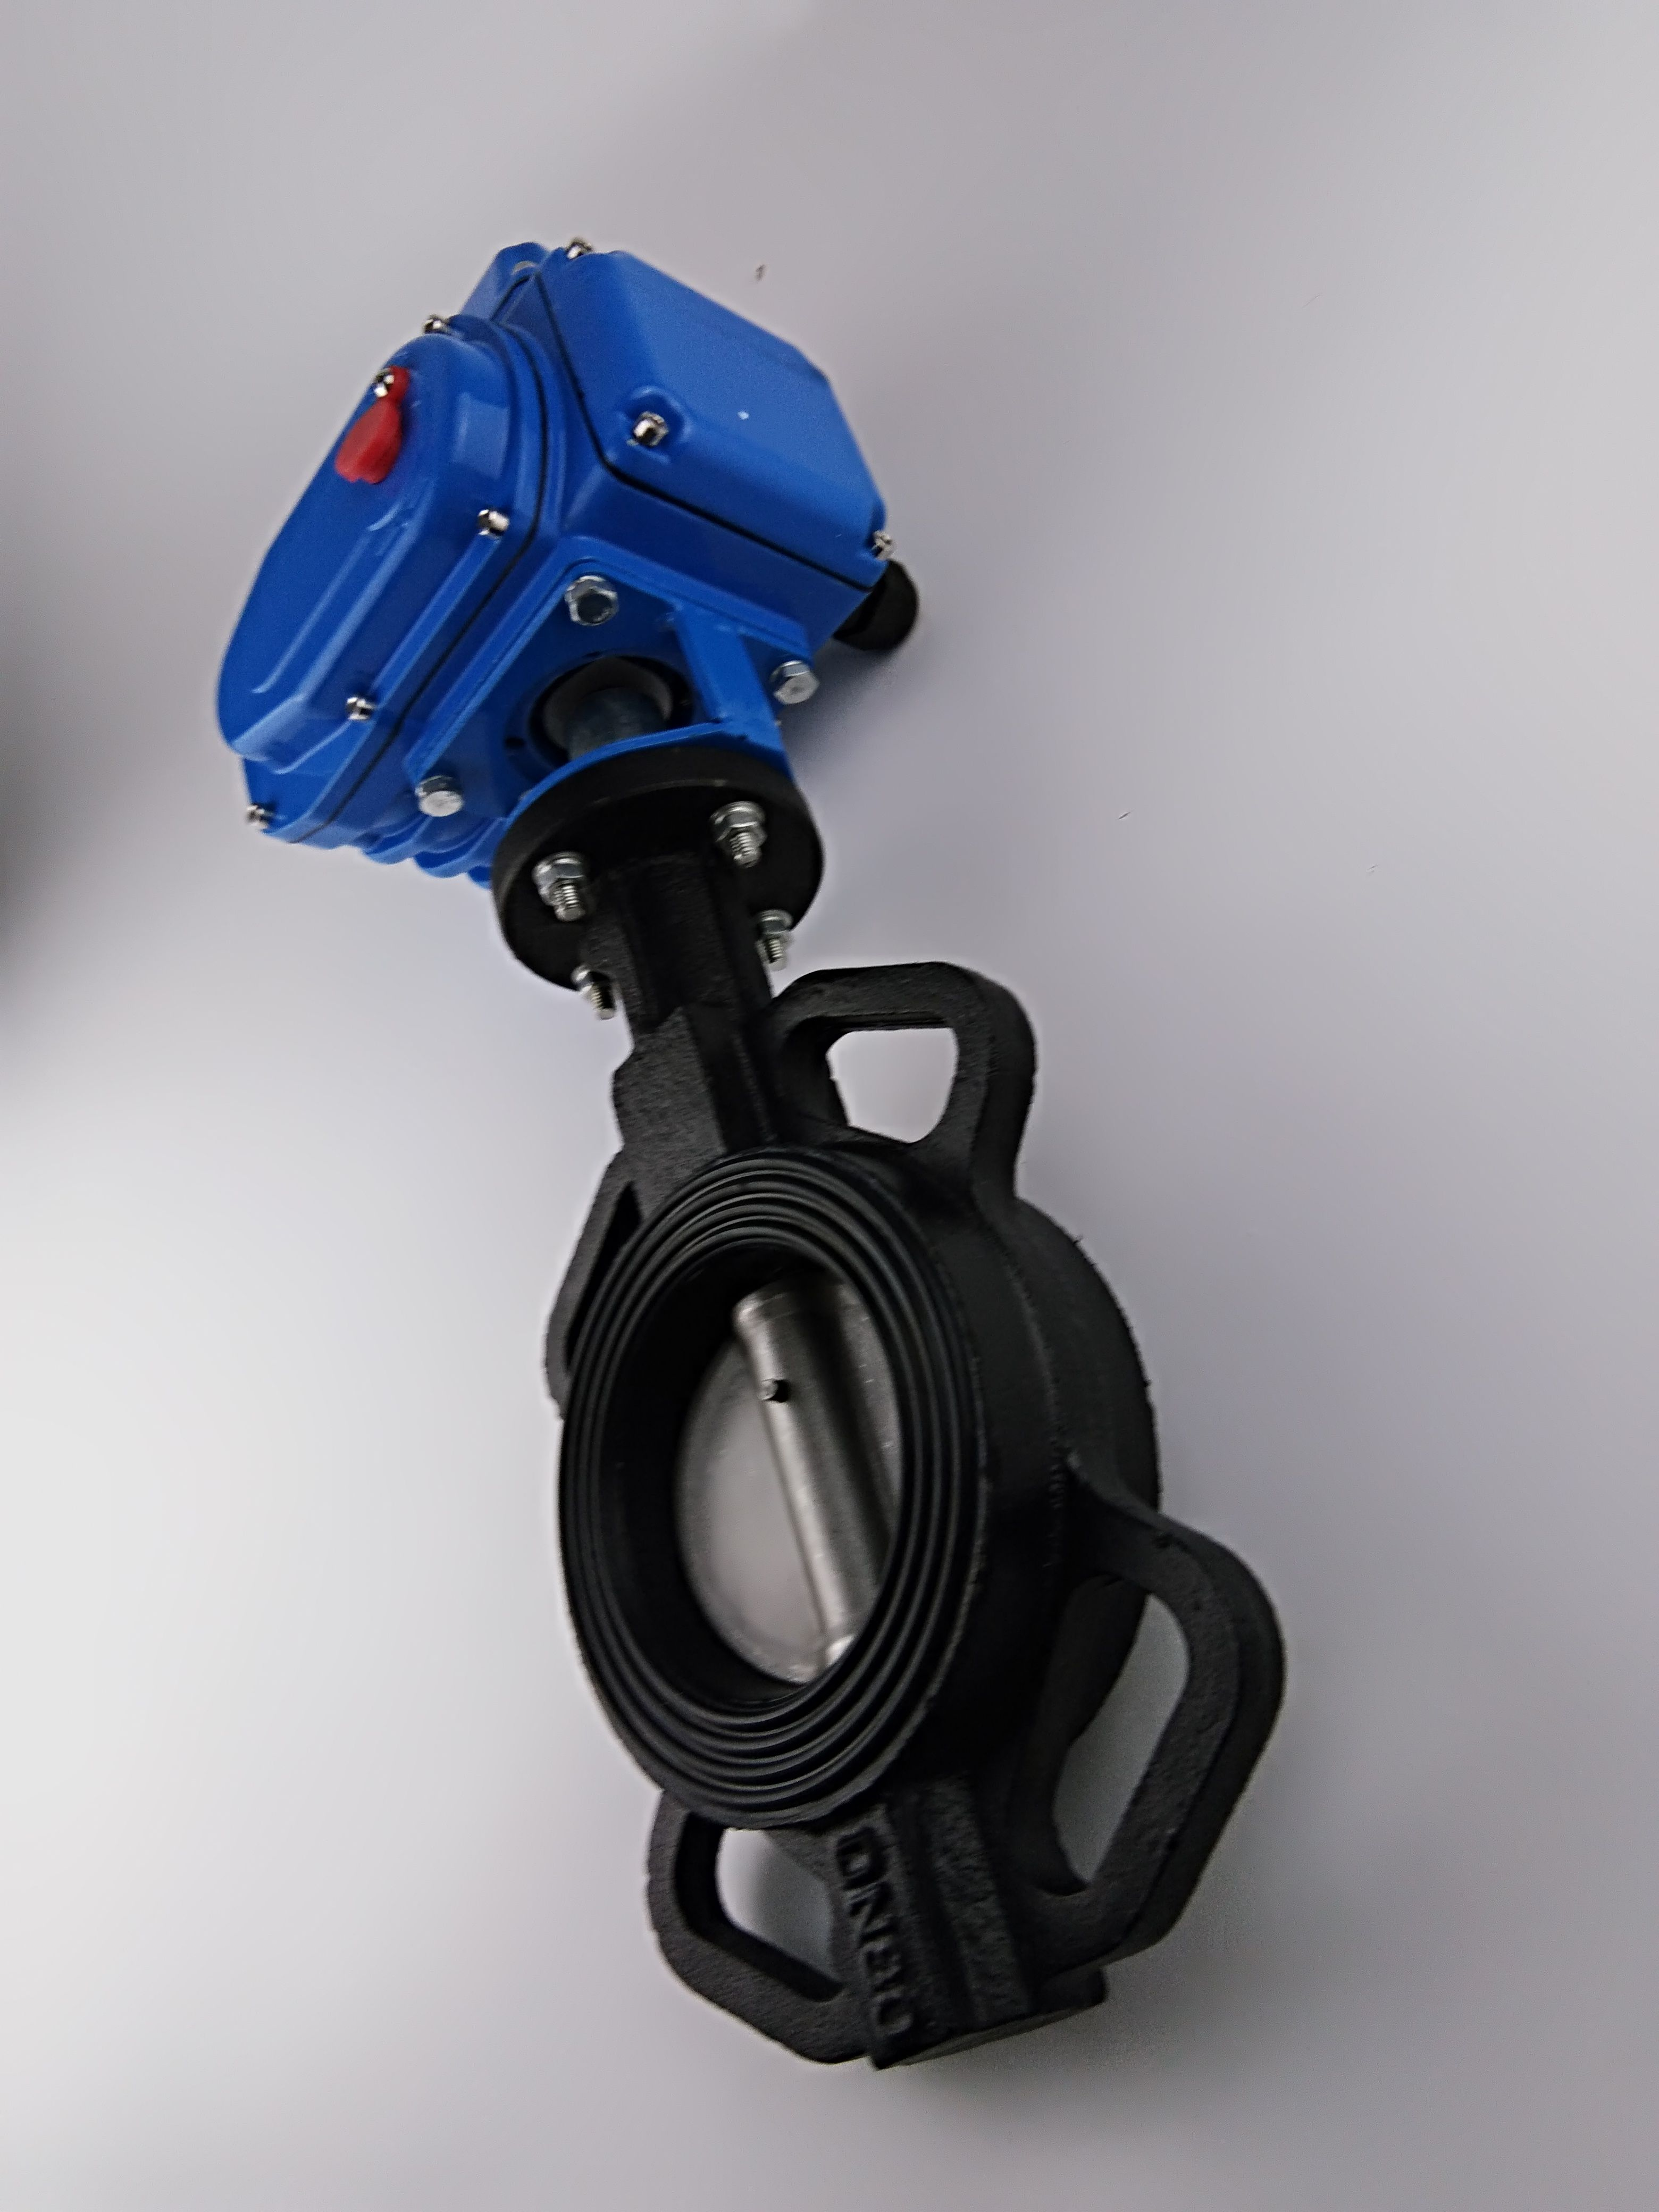 Butterfly valve produced by hebei tongli automatic control